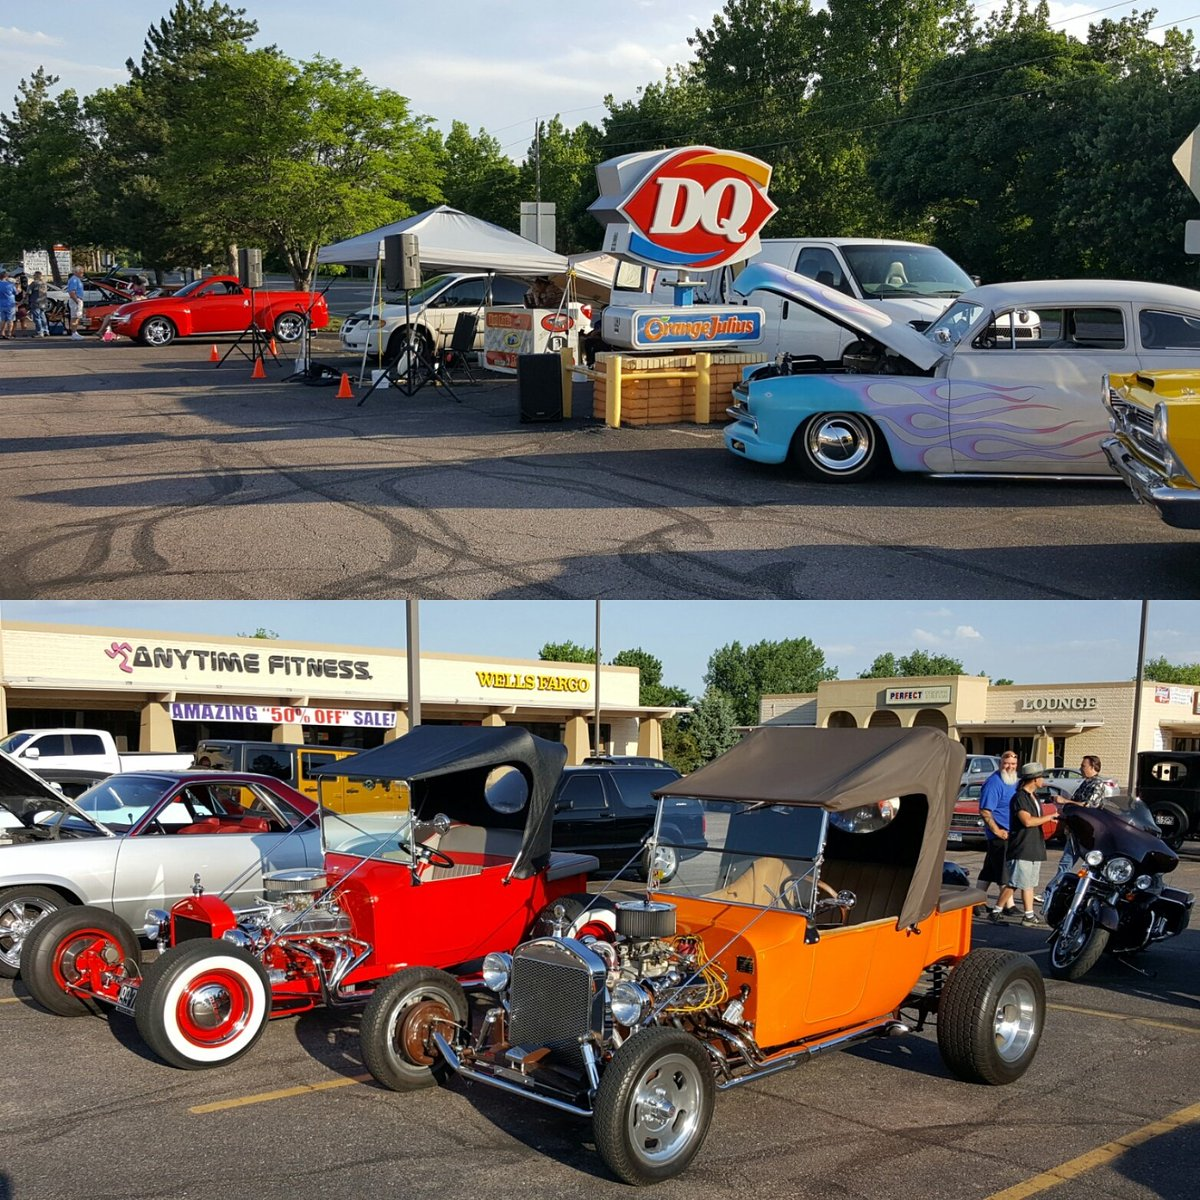 Colorado Car Guy On Twitter Fathers Day Car Show Tonight - Littleton car show